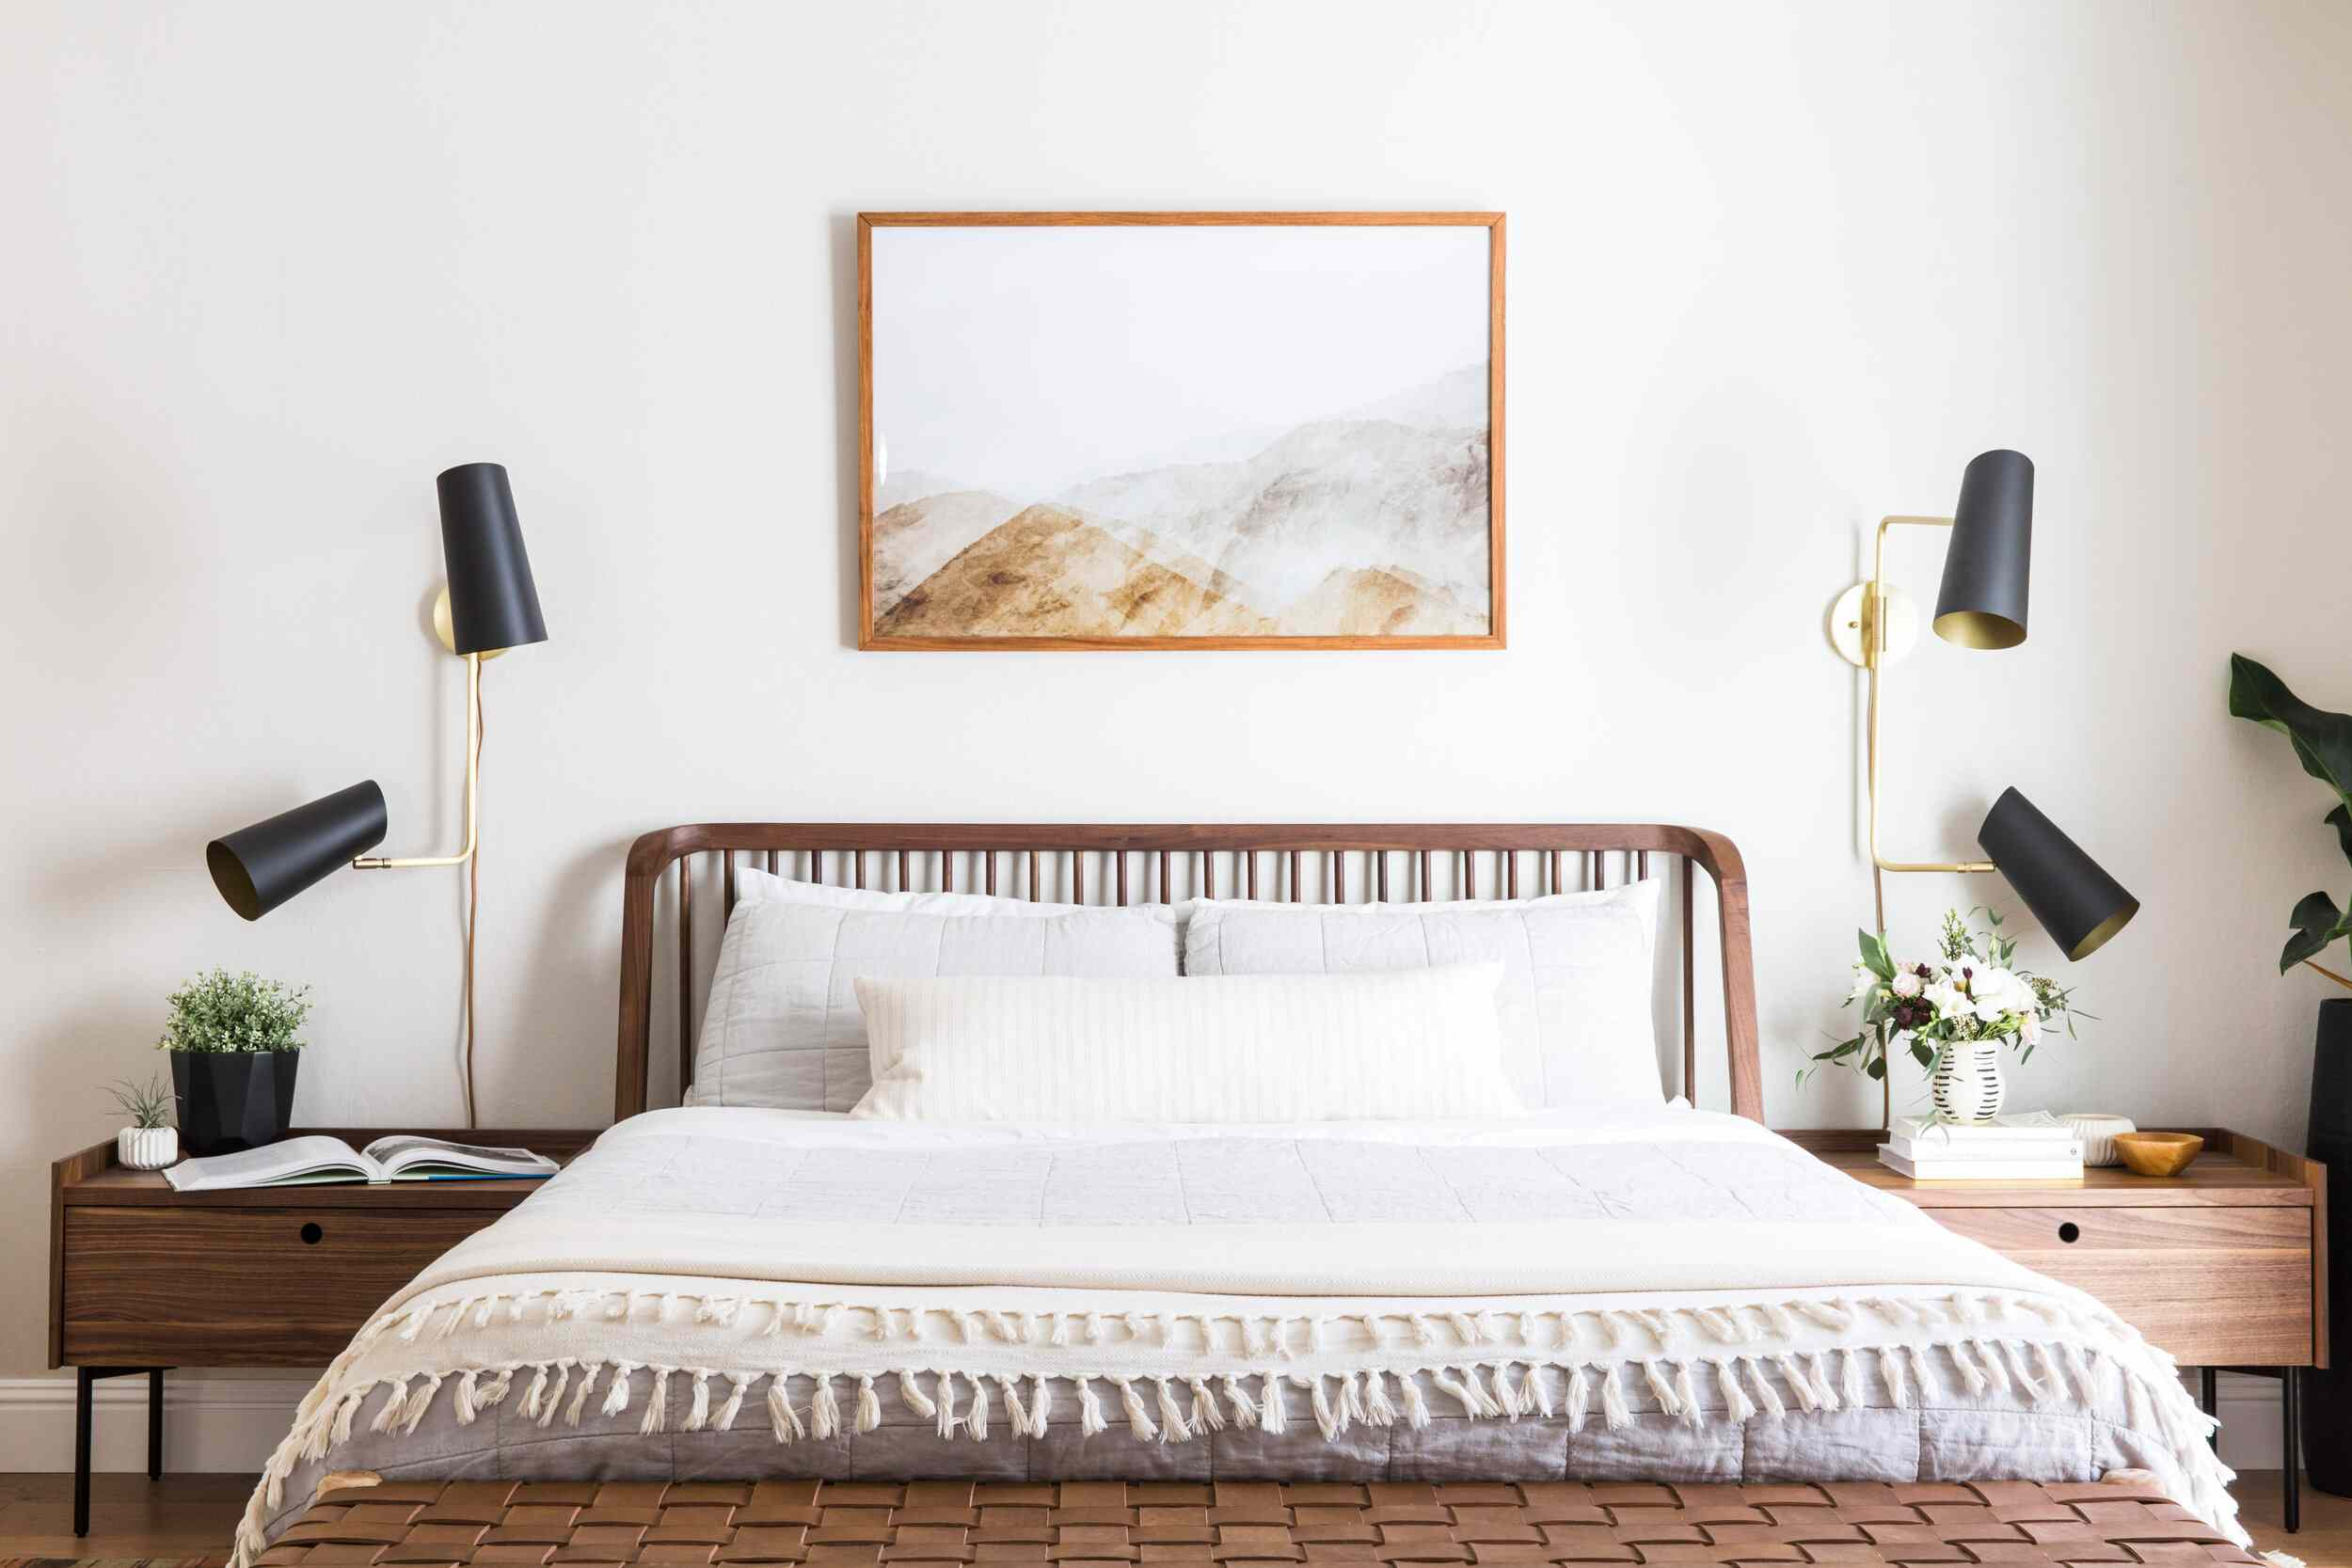 Guest bedroom with fresh flowers on nightstand